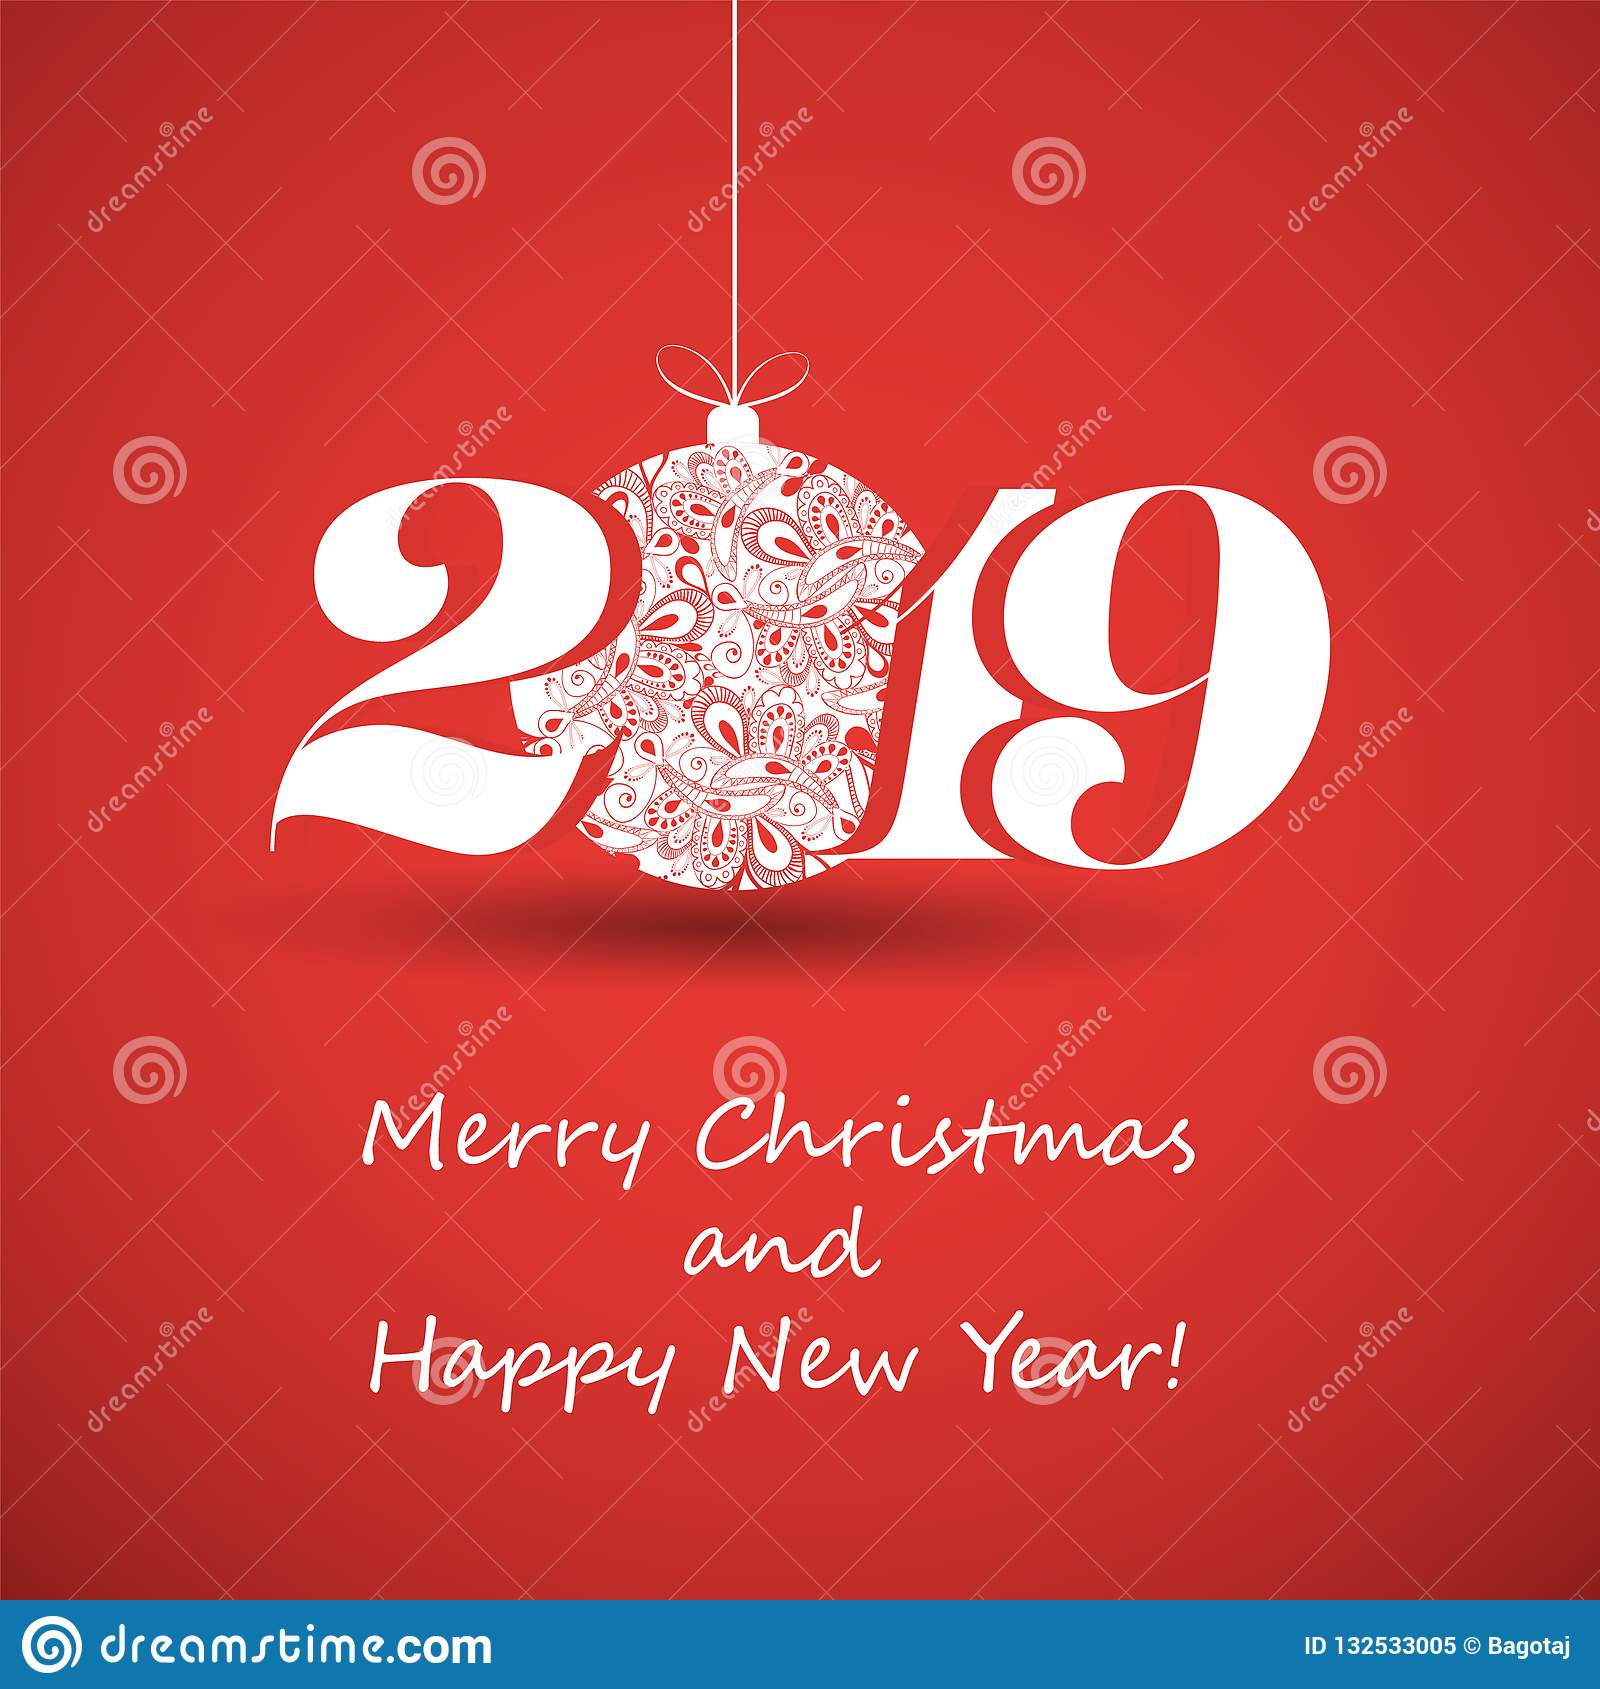 Merry Christmas And Happy New Year Greeting Card, Creative ...